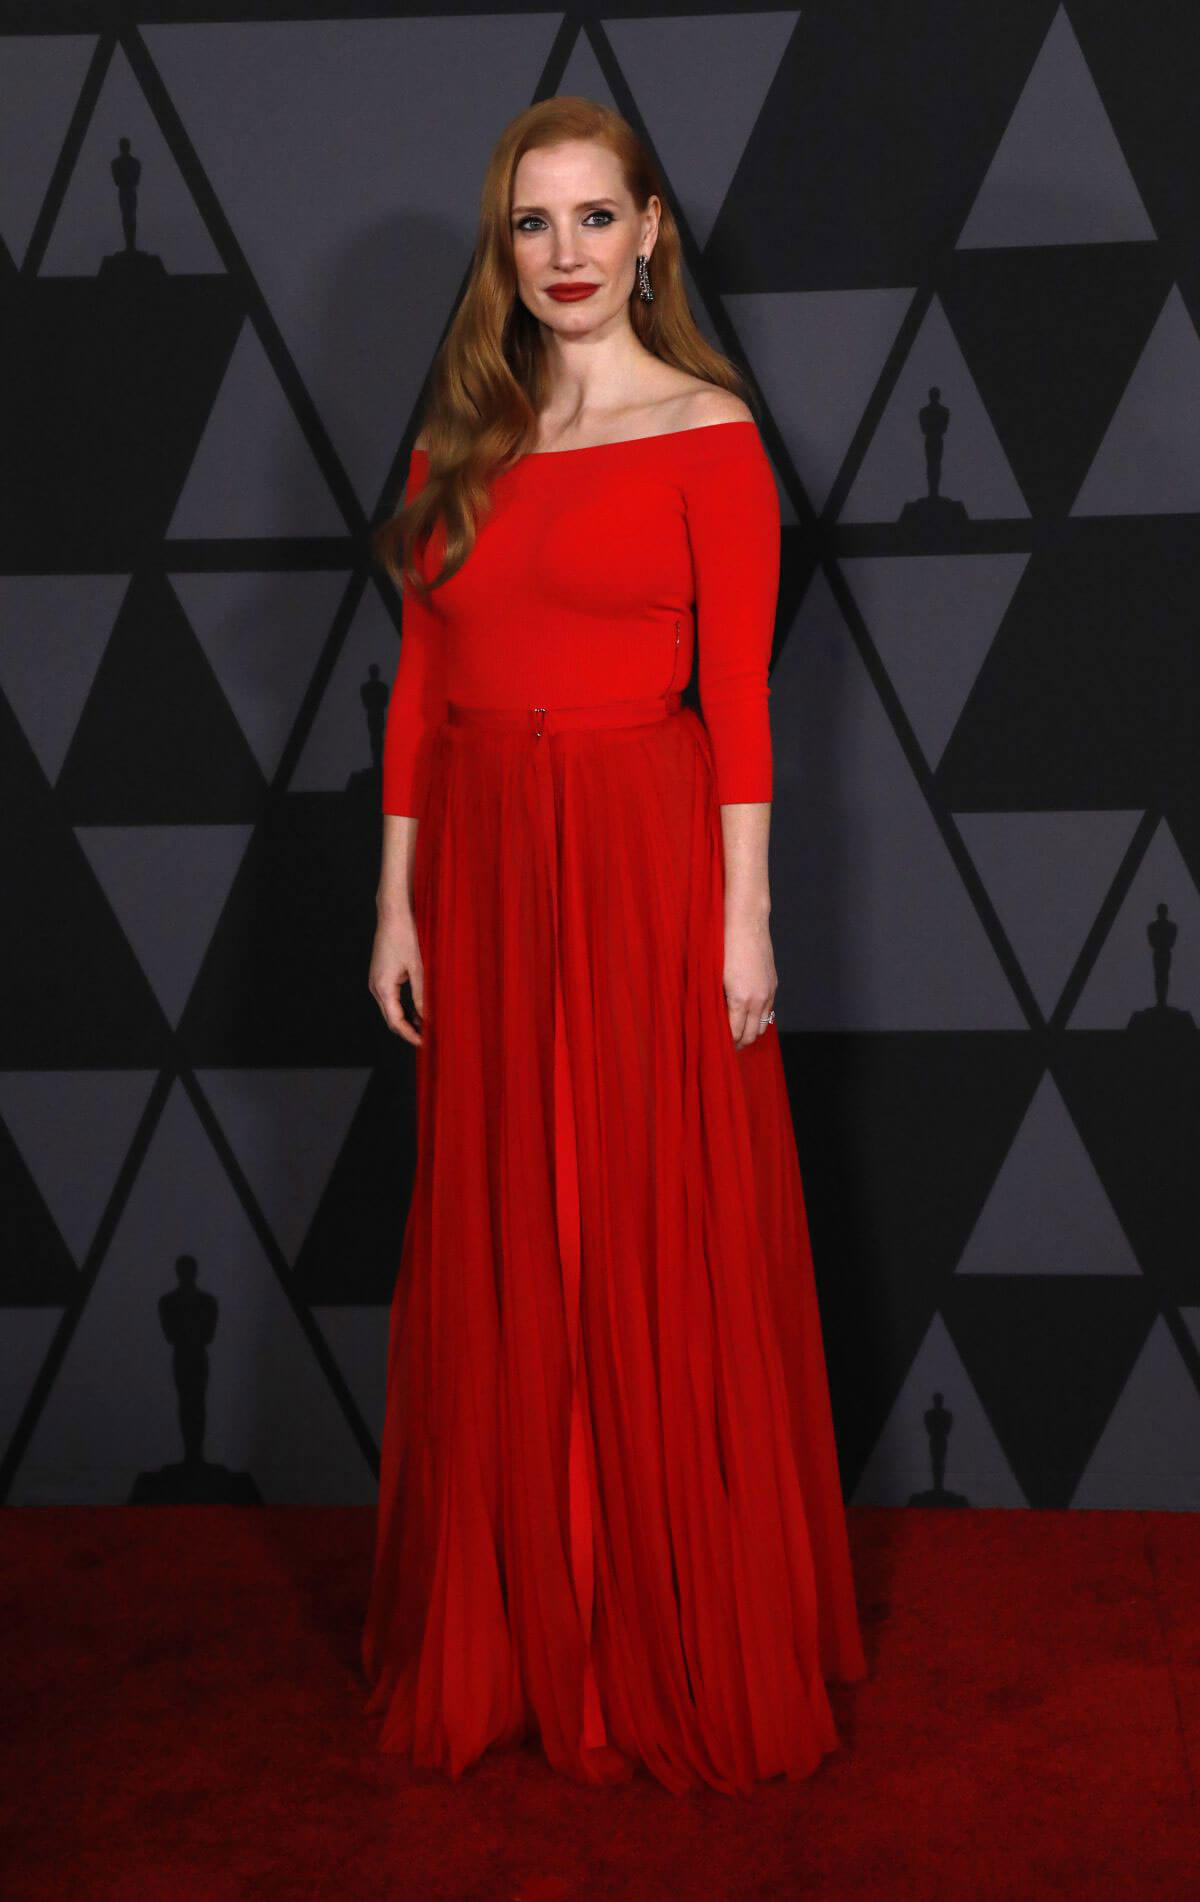 Jessica Chastain Stills at AMPAS 9th Annual Governors Awards in Hollywood